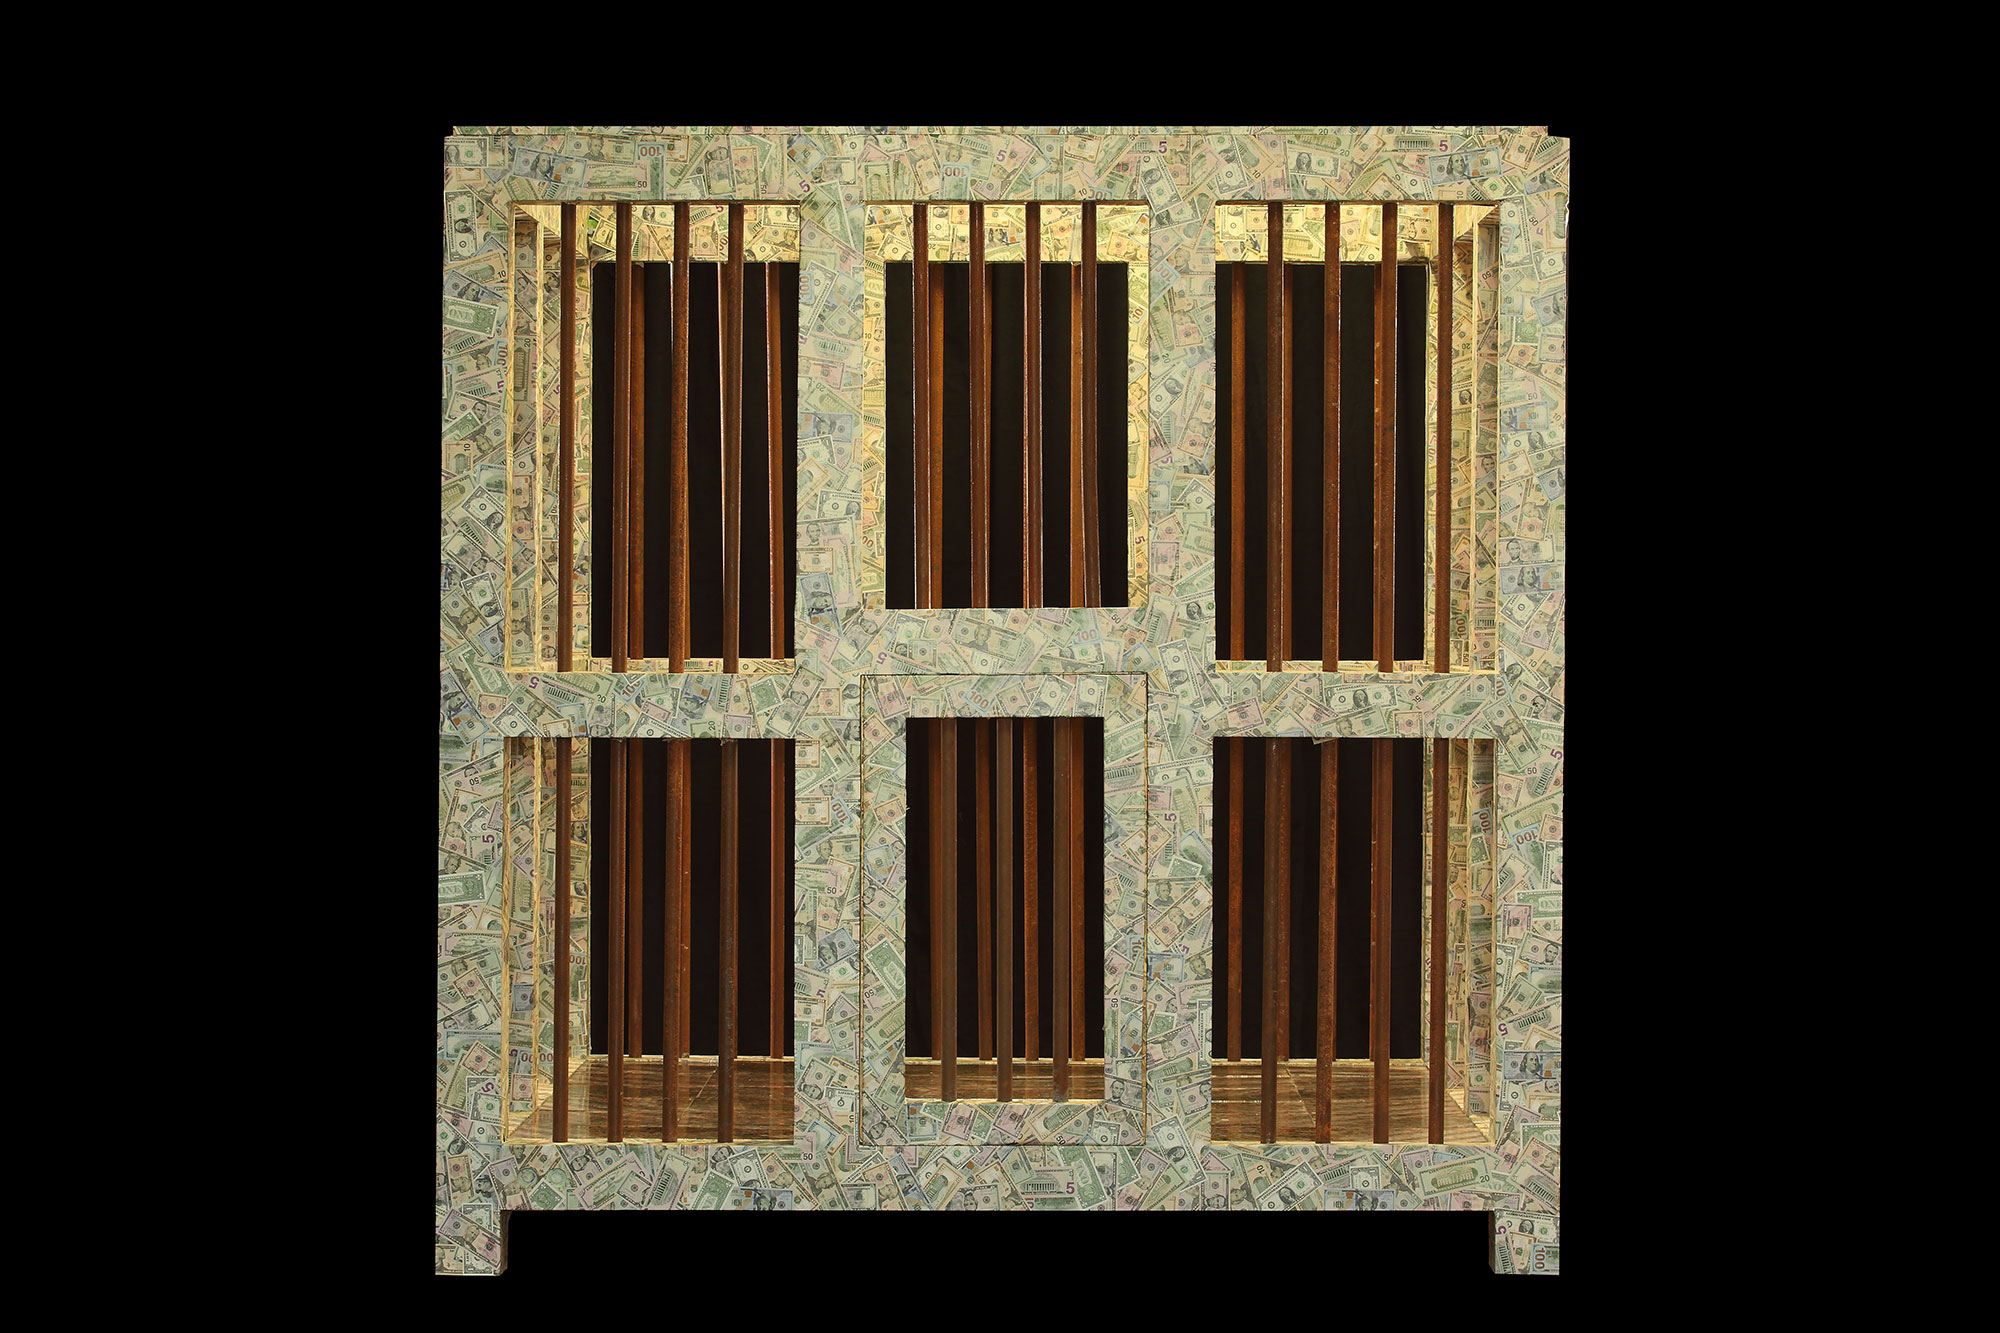 The Spell is a formidable 8-ft square wooden cage with old rusted bars. The cage is completely covered in paper money with a coin floor. The original display of this cage will feature a vibrant 4-ft stained glass earth, which is glowing from within and revolving.